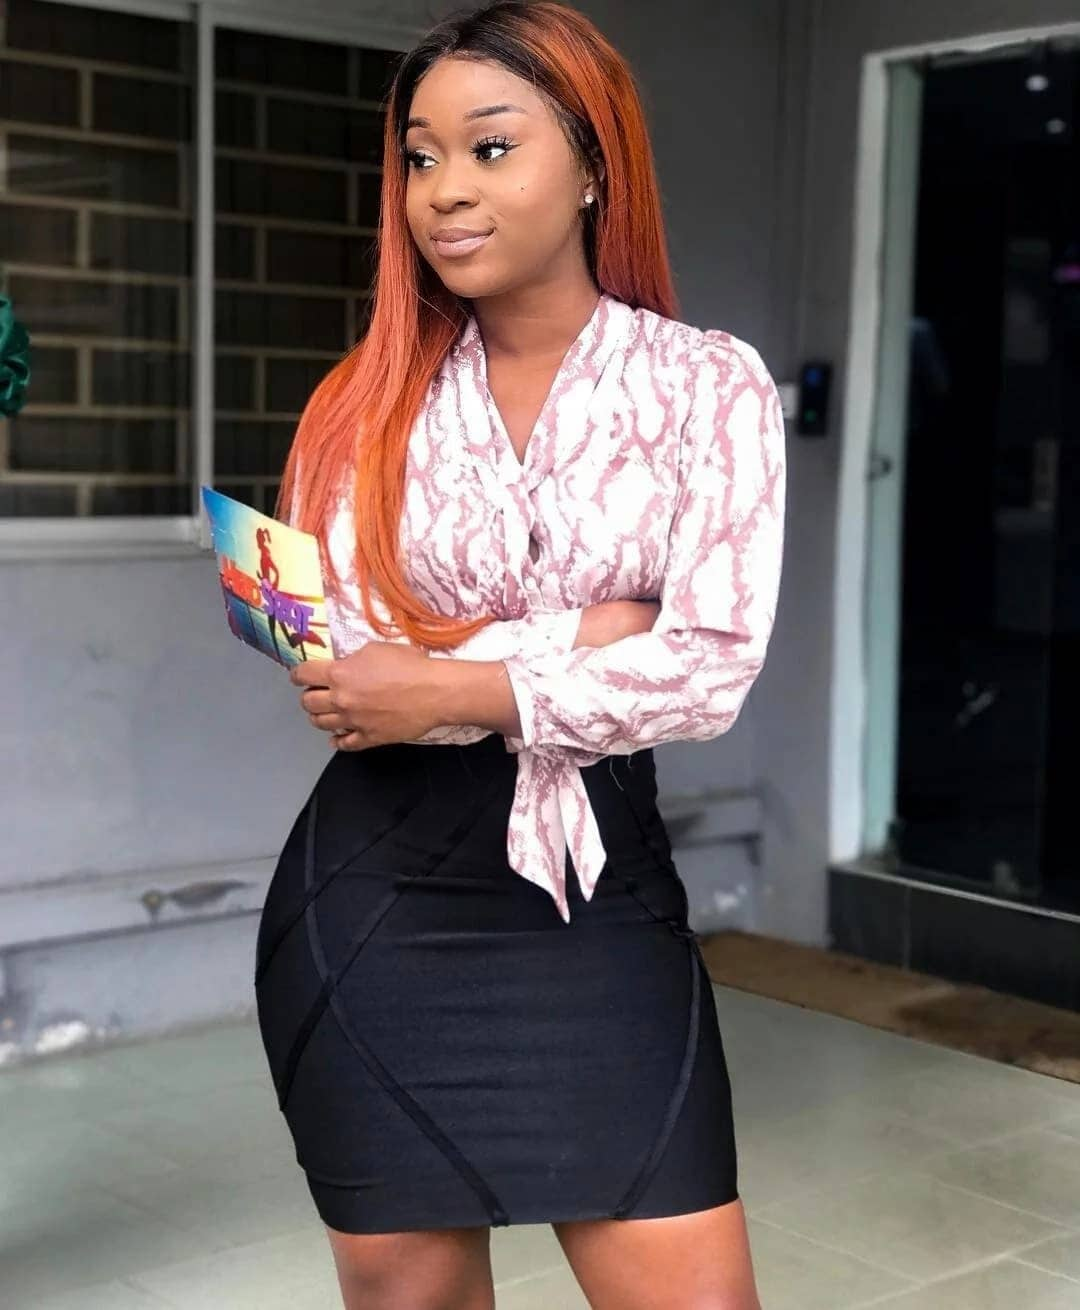 Efia Odo has joined Kwese TV as sports presenter